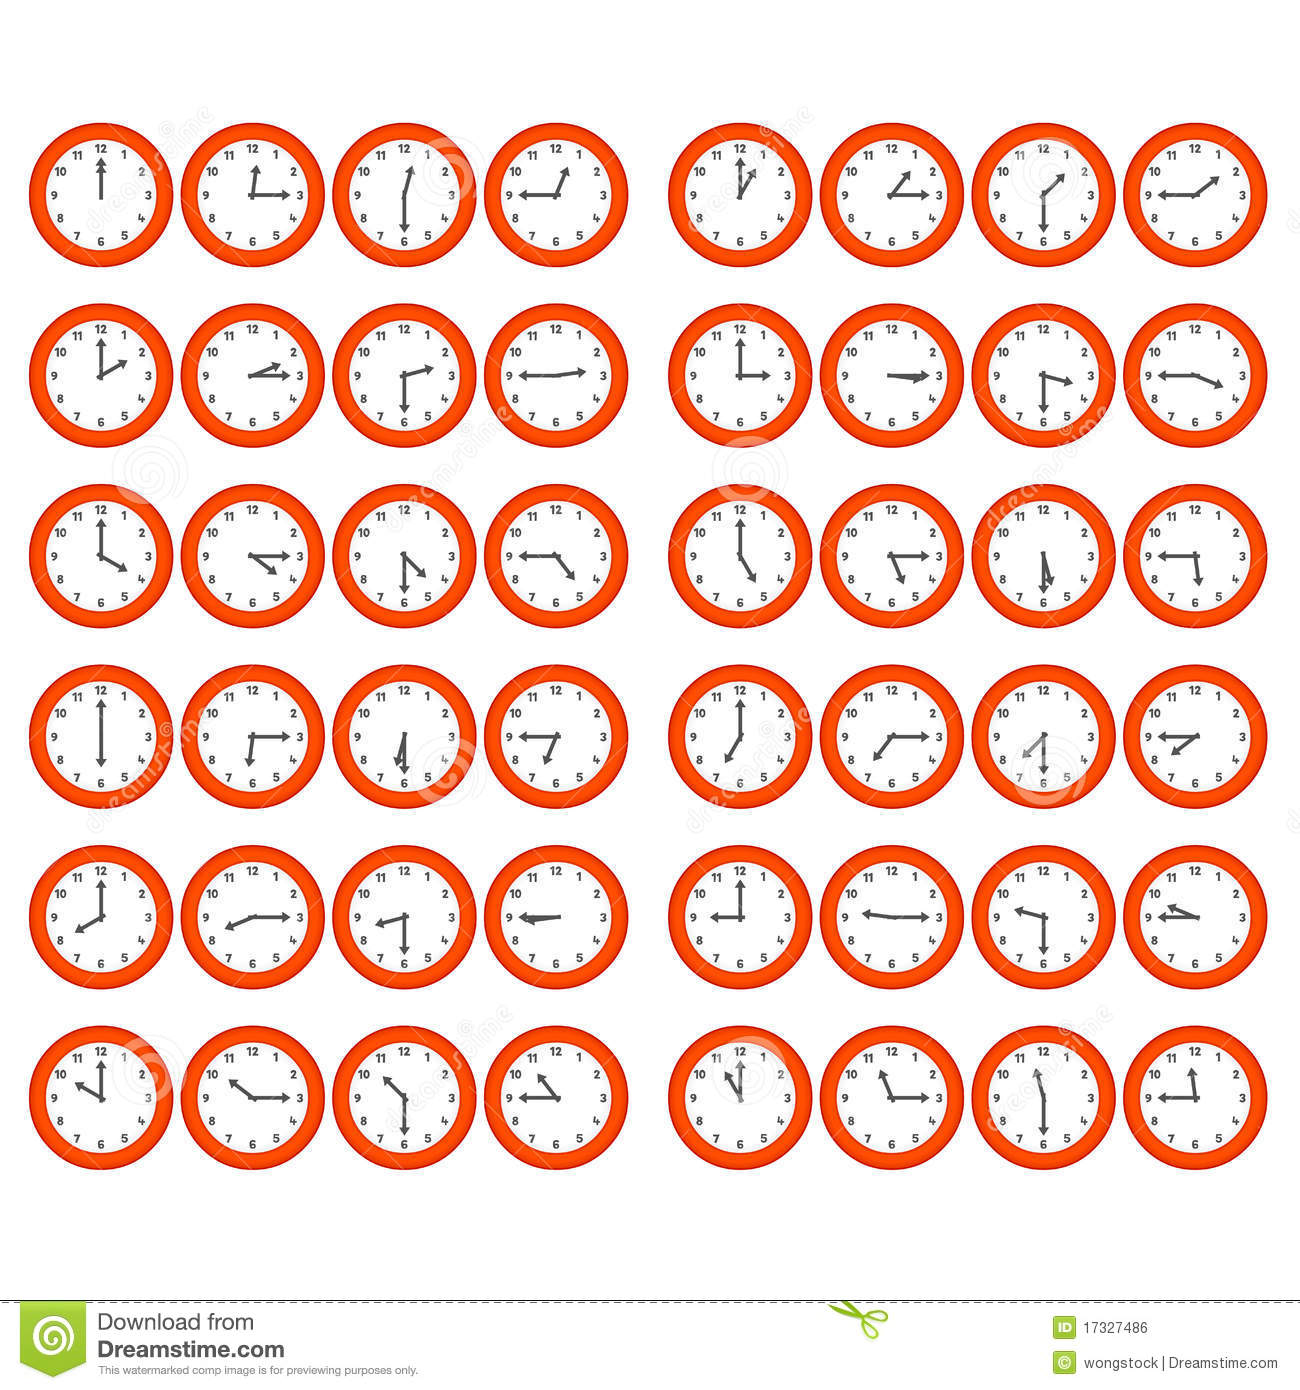 Red Cartoon Clocks Showing Every 15 Minutes Past t